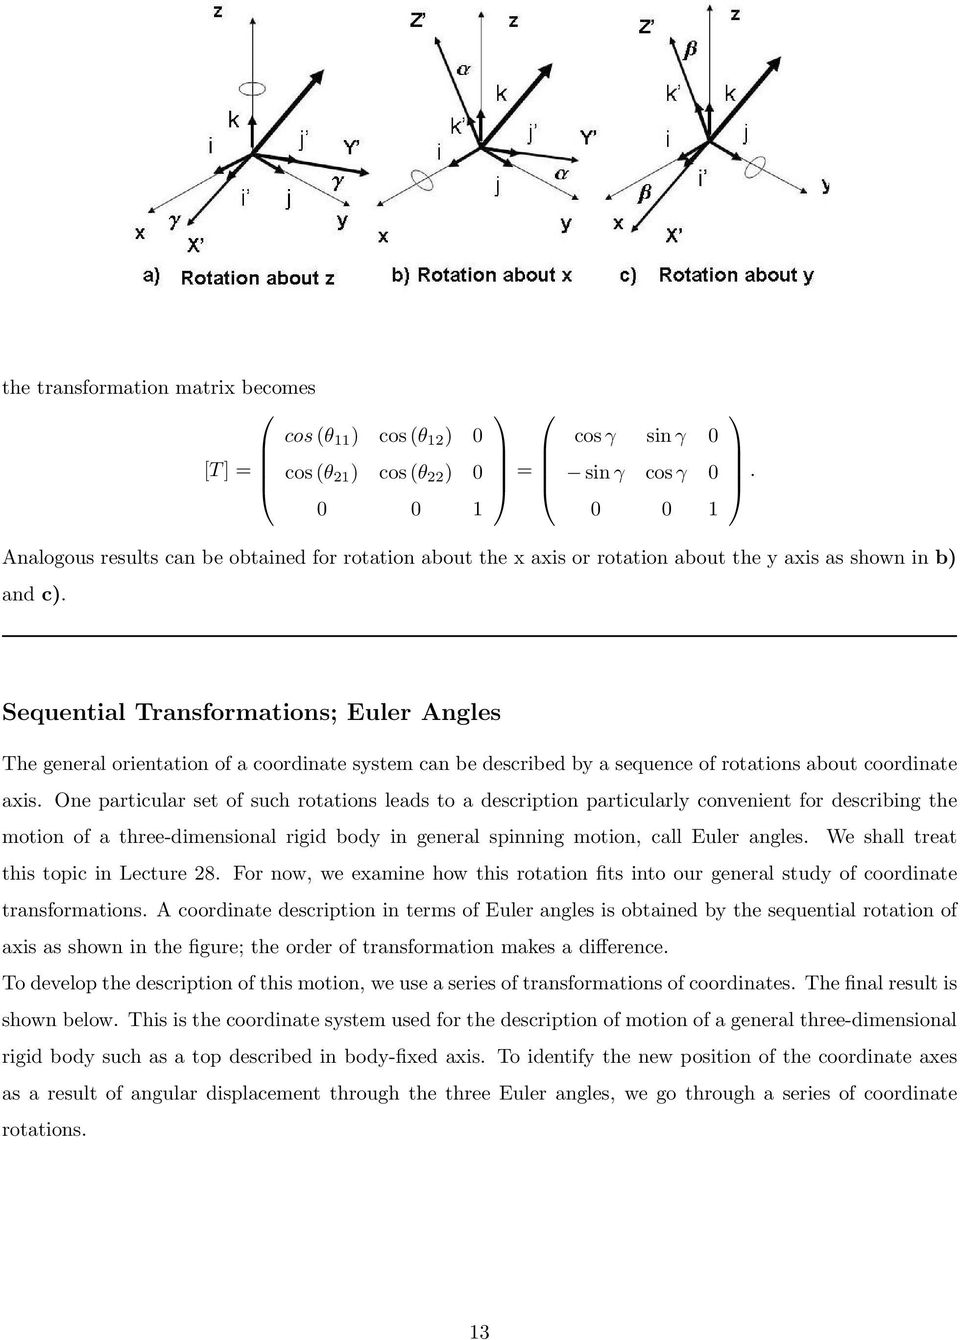 Sequential Transformations; Euler Angles The general orientation of a coordinate system can be described by a sequence of rotations about coordinate axis.